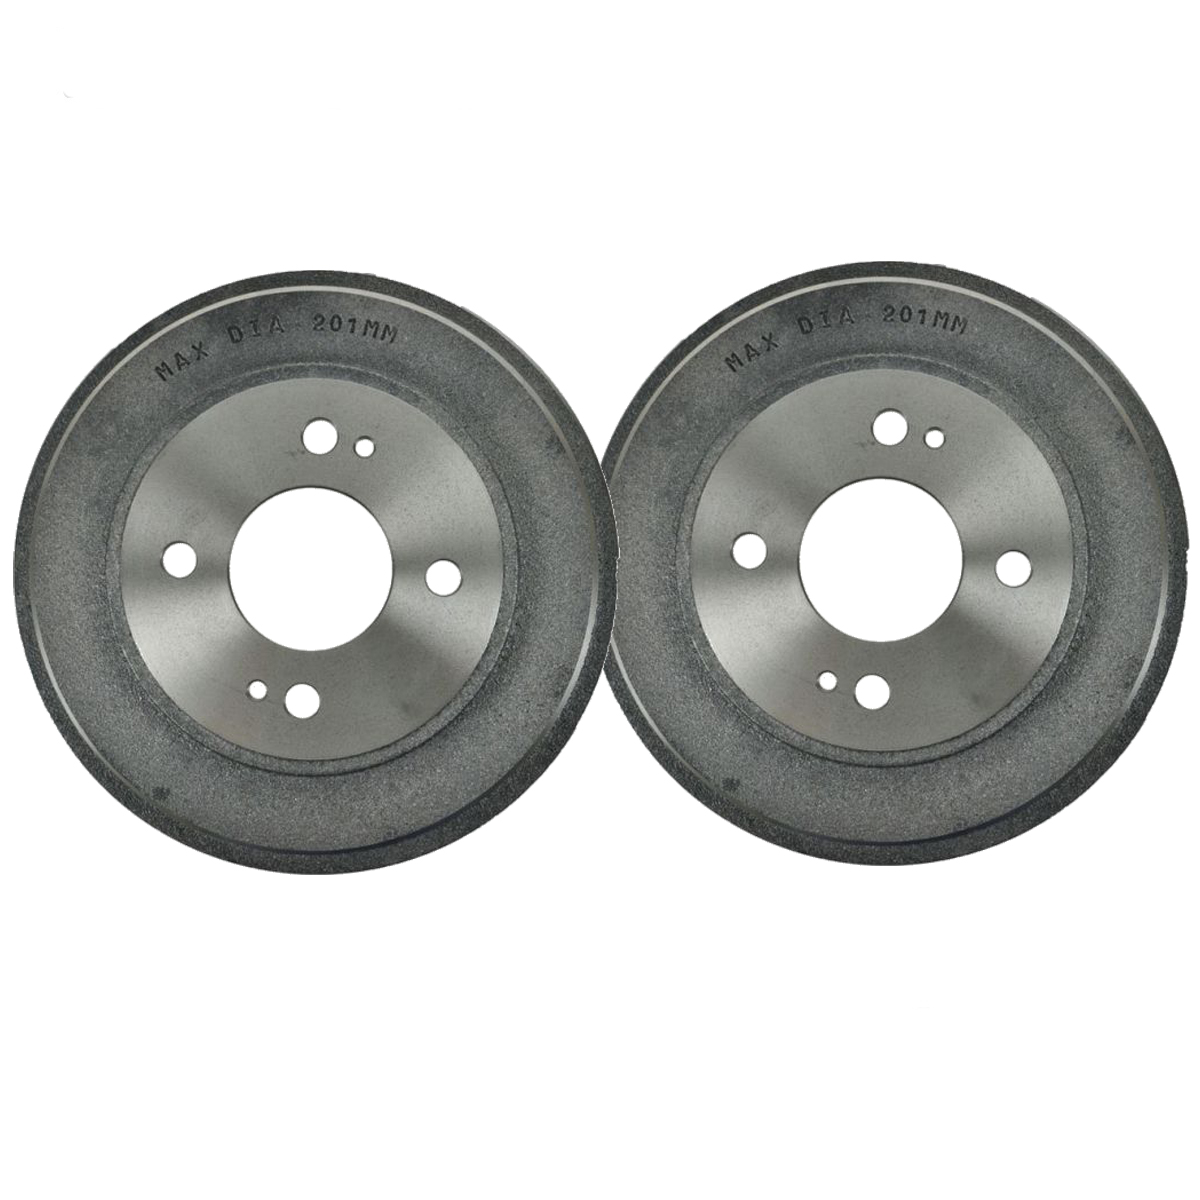 1993 1994 1995 1996 1997 Geo Prizm OE Replacement Rotors w//Ceramic Pads F